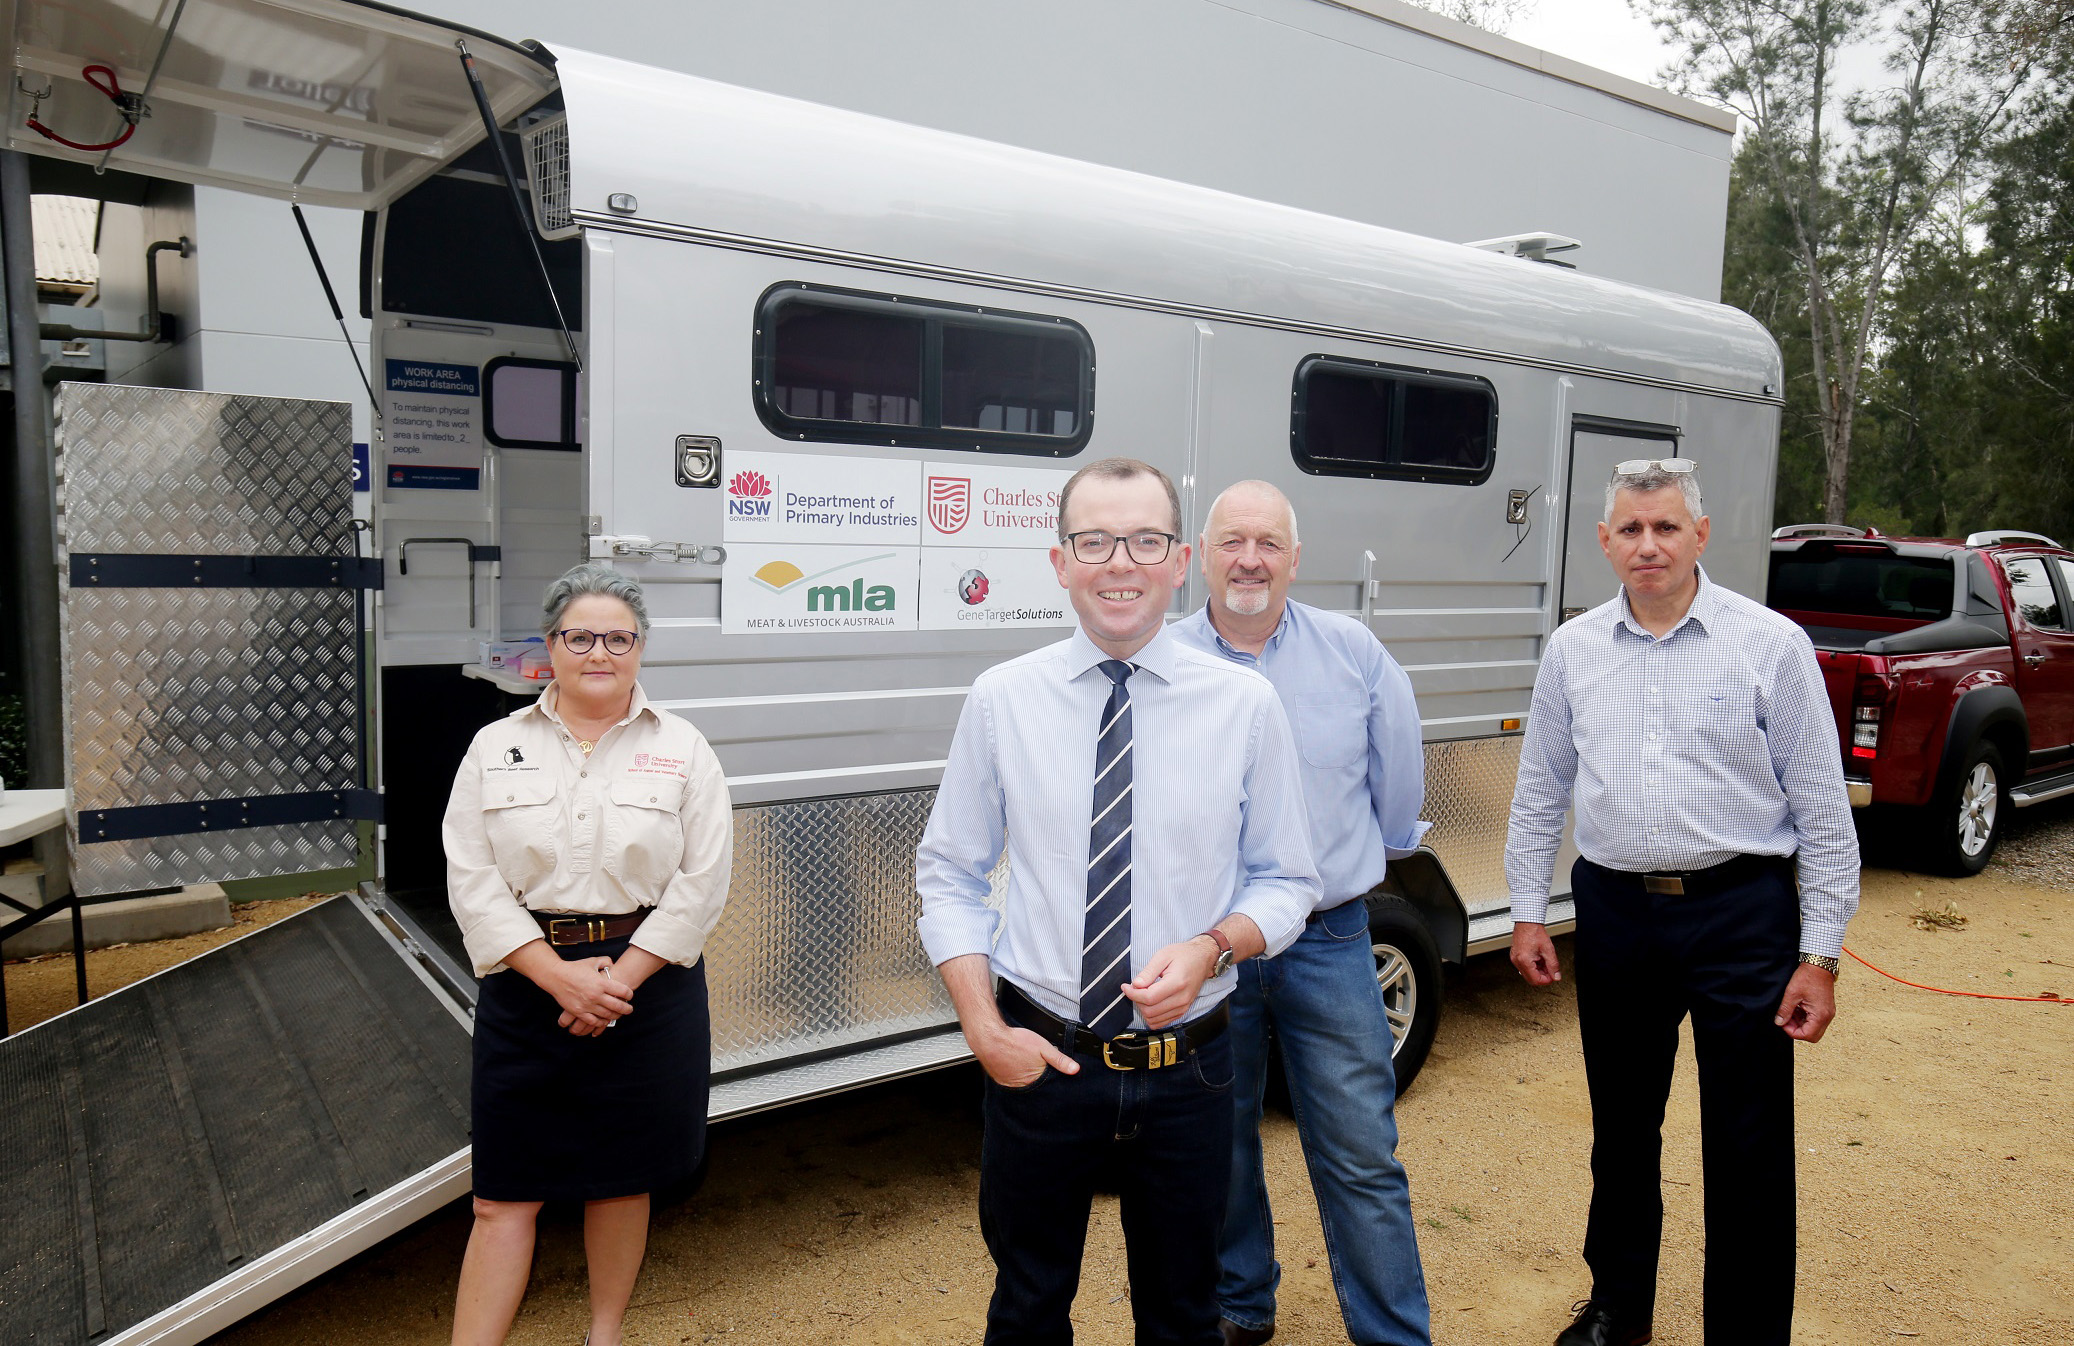 Minister Adam Marsh, Dr Jane Quinn, Dr Ian Marsh and Andrew Szentirmay with the mobile testing laboratory